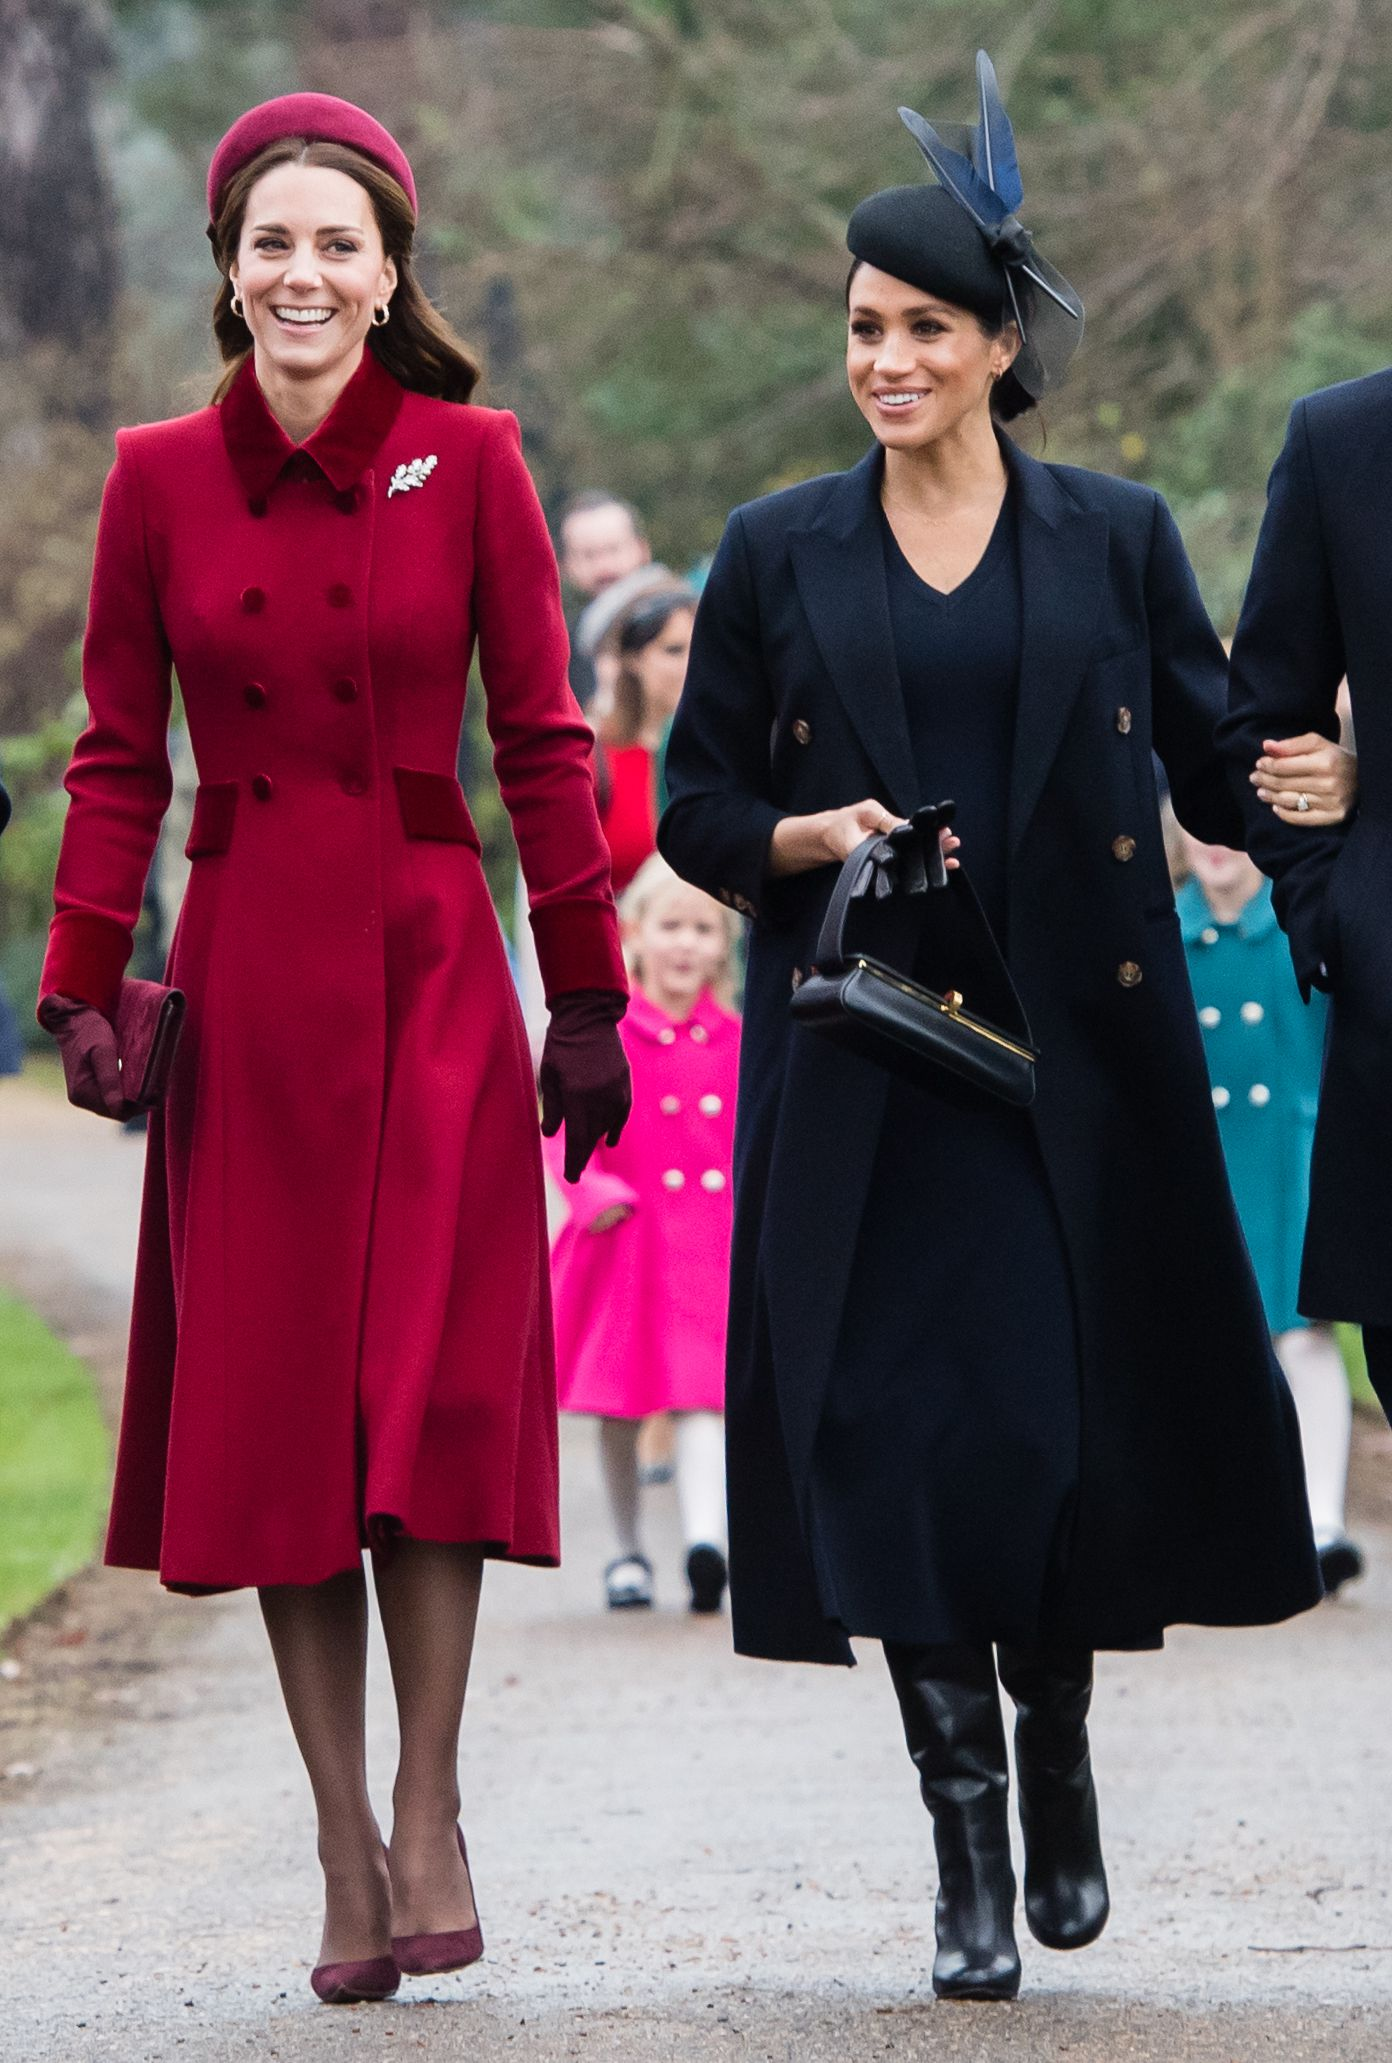 Palace Tackles Online Threats and Abuse Towards Meghan Markle and Kate Middleton